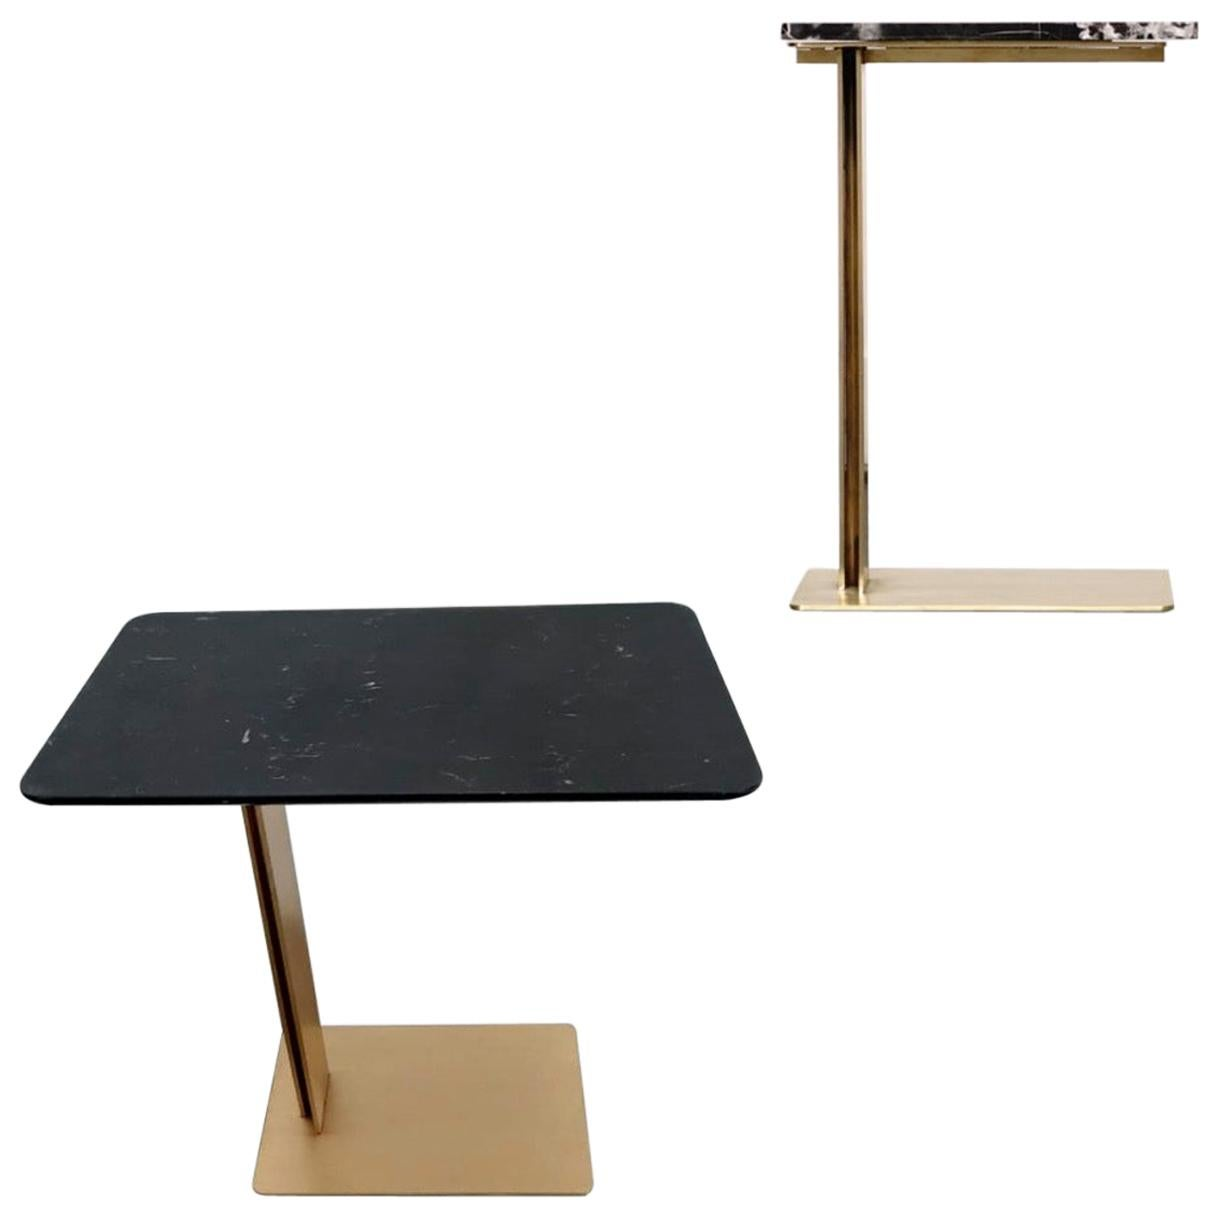 Drone Side Table Set x 2 Black Marble and Brass Table by ATRA